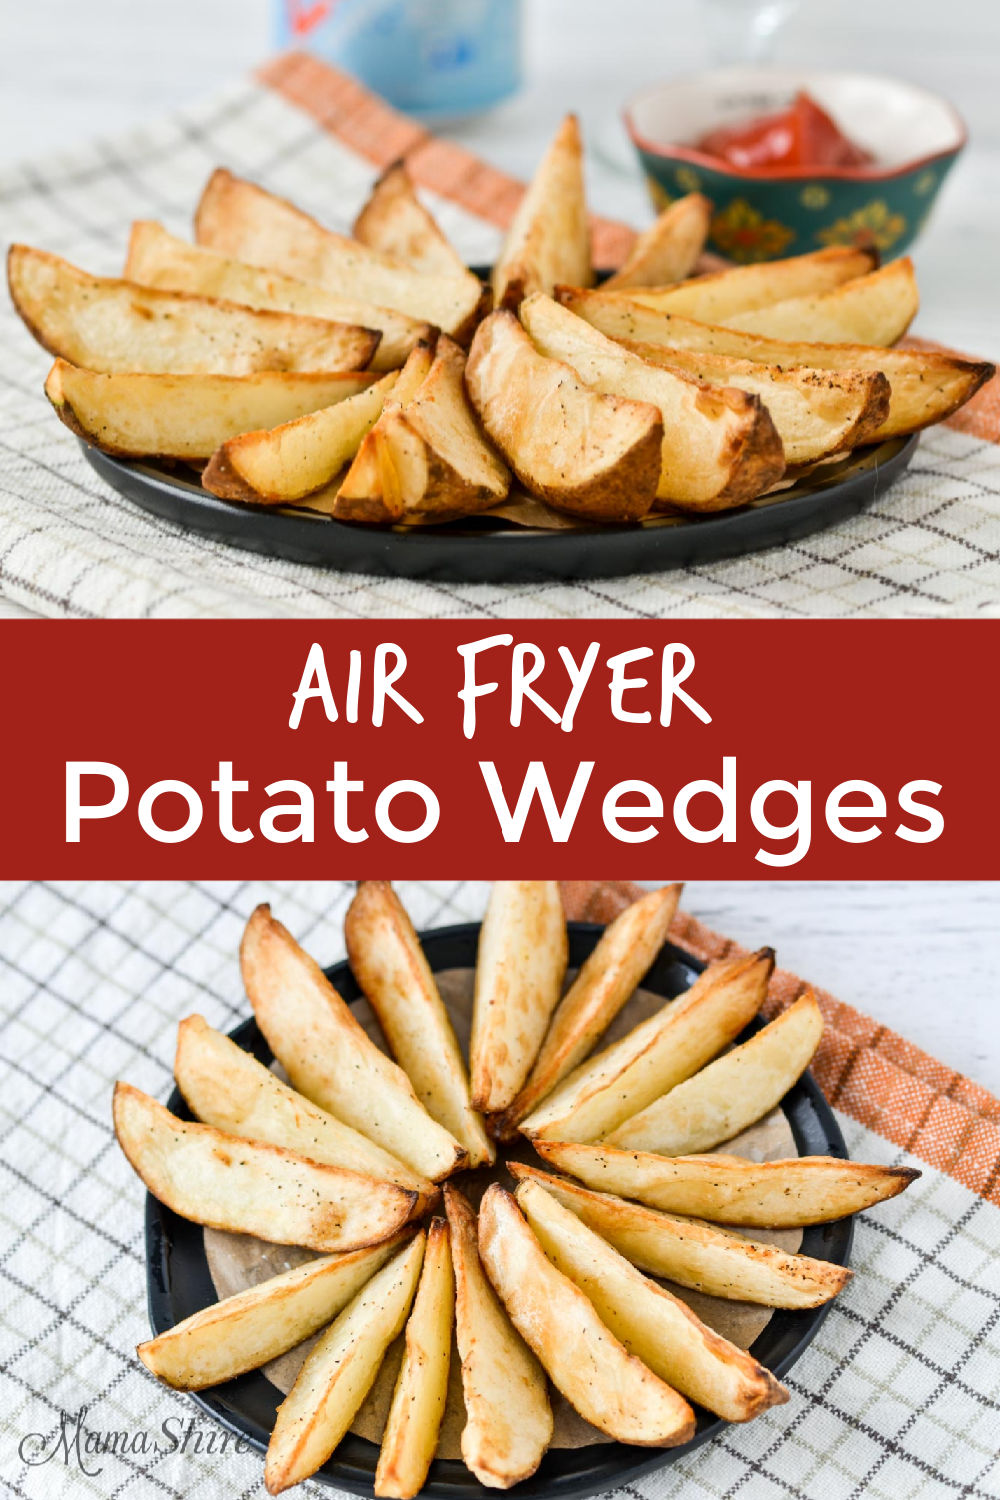 Potatoes made in the air fryer.